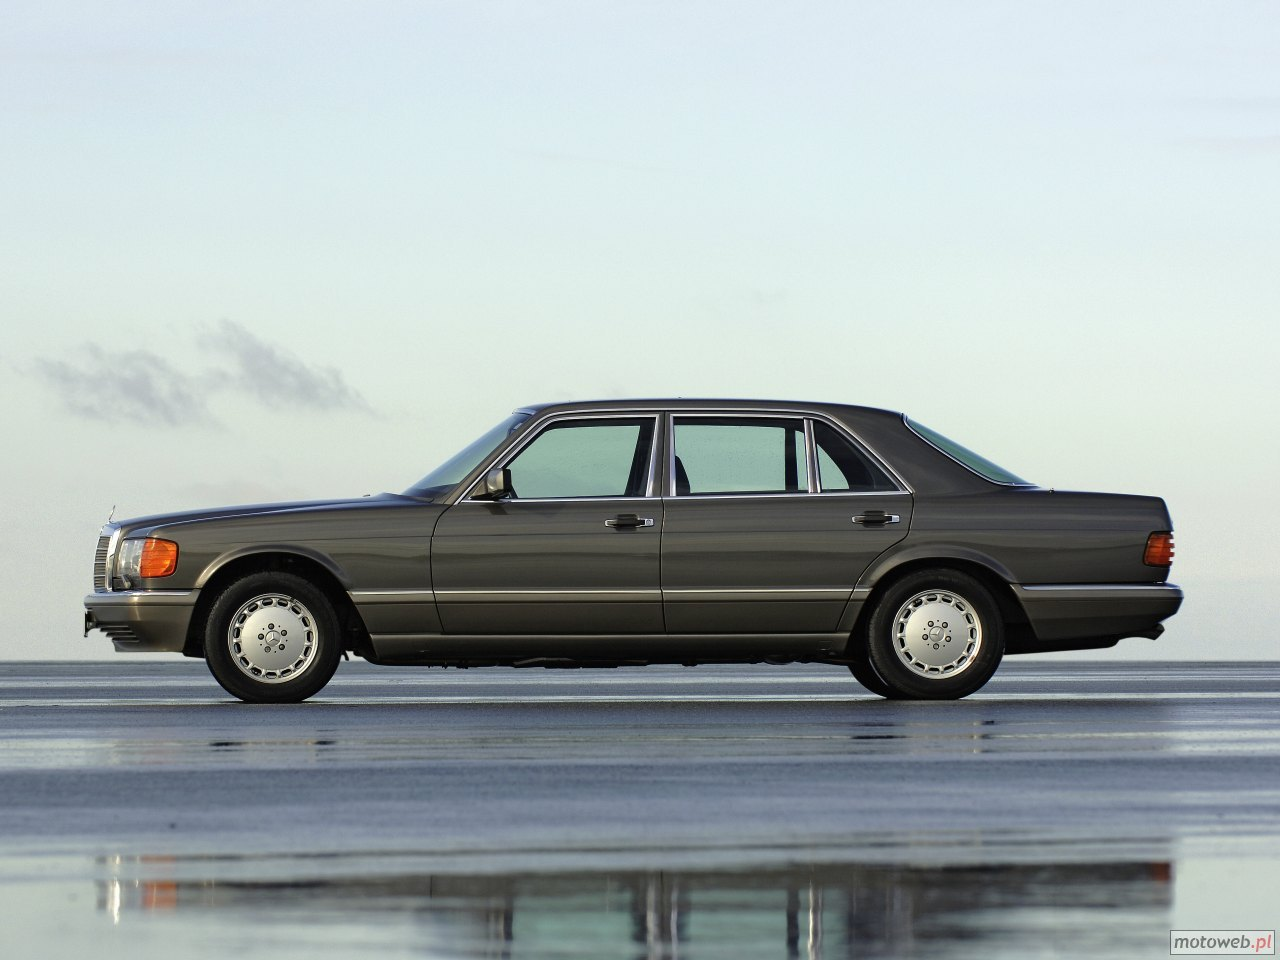 Mercedes Benz S W126 - specifications, description, photos.